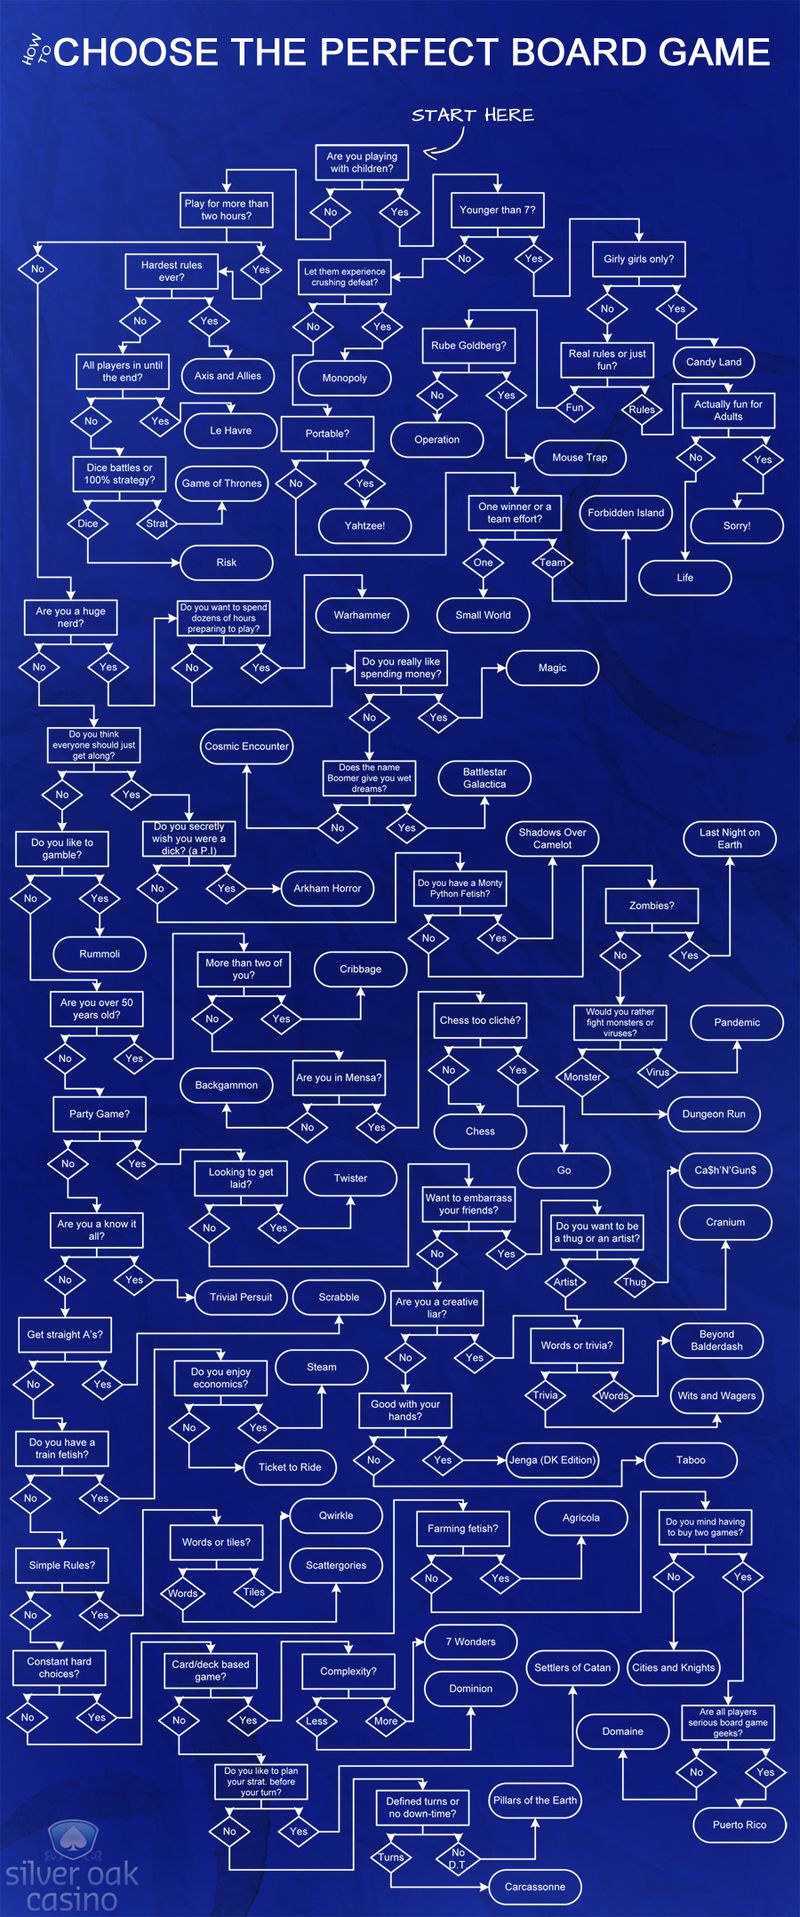 How to pick which board game to play, in one handy flowchart